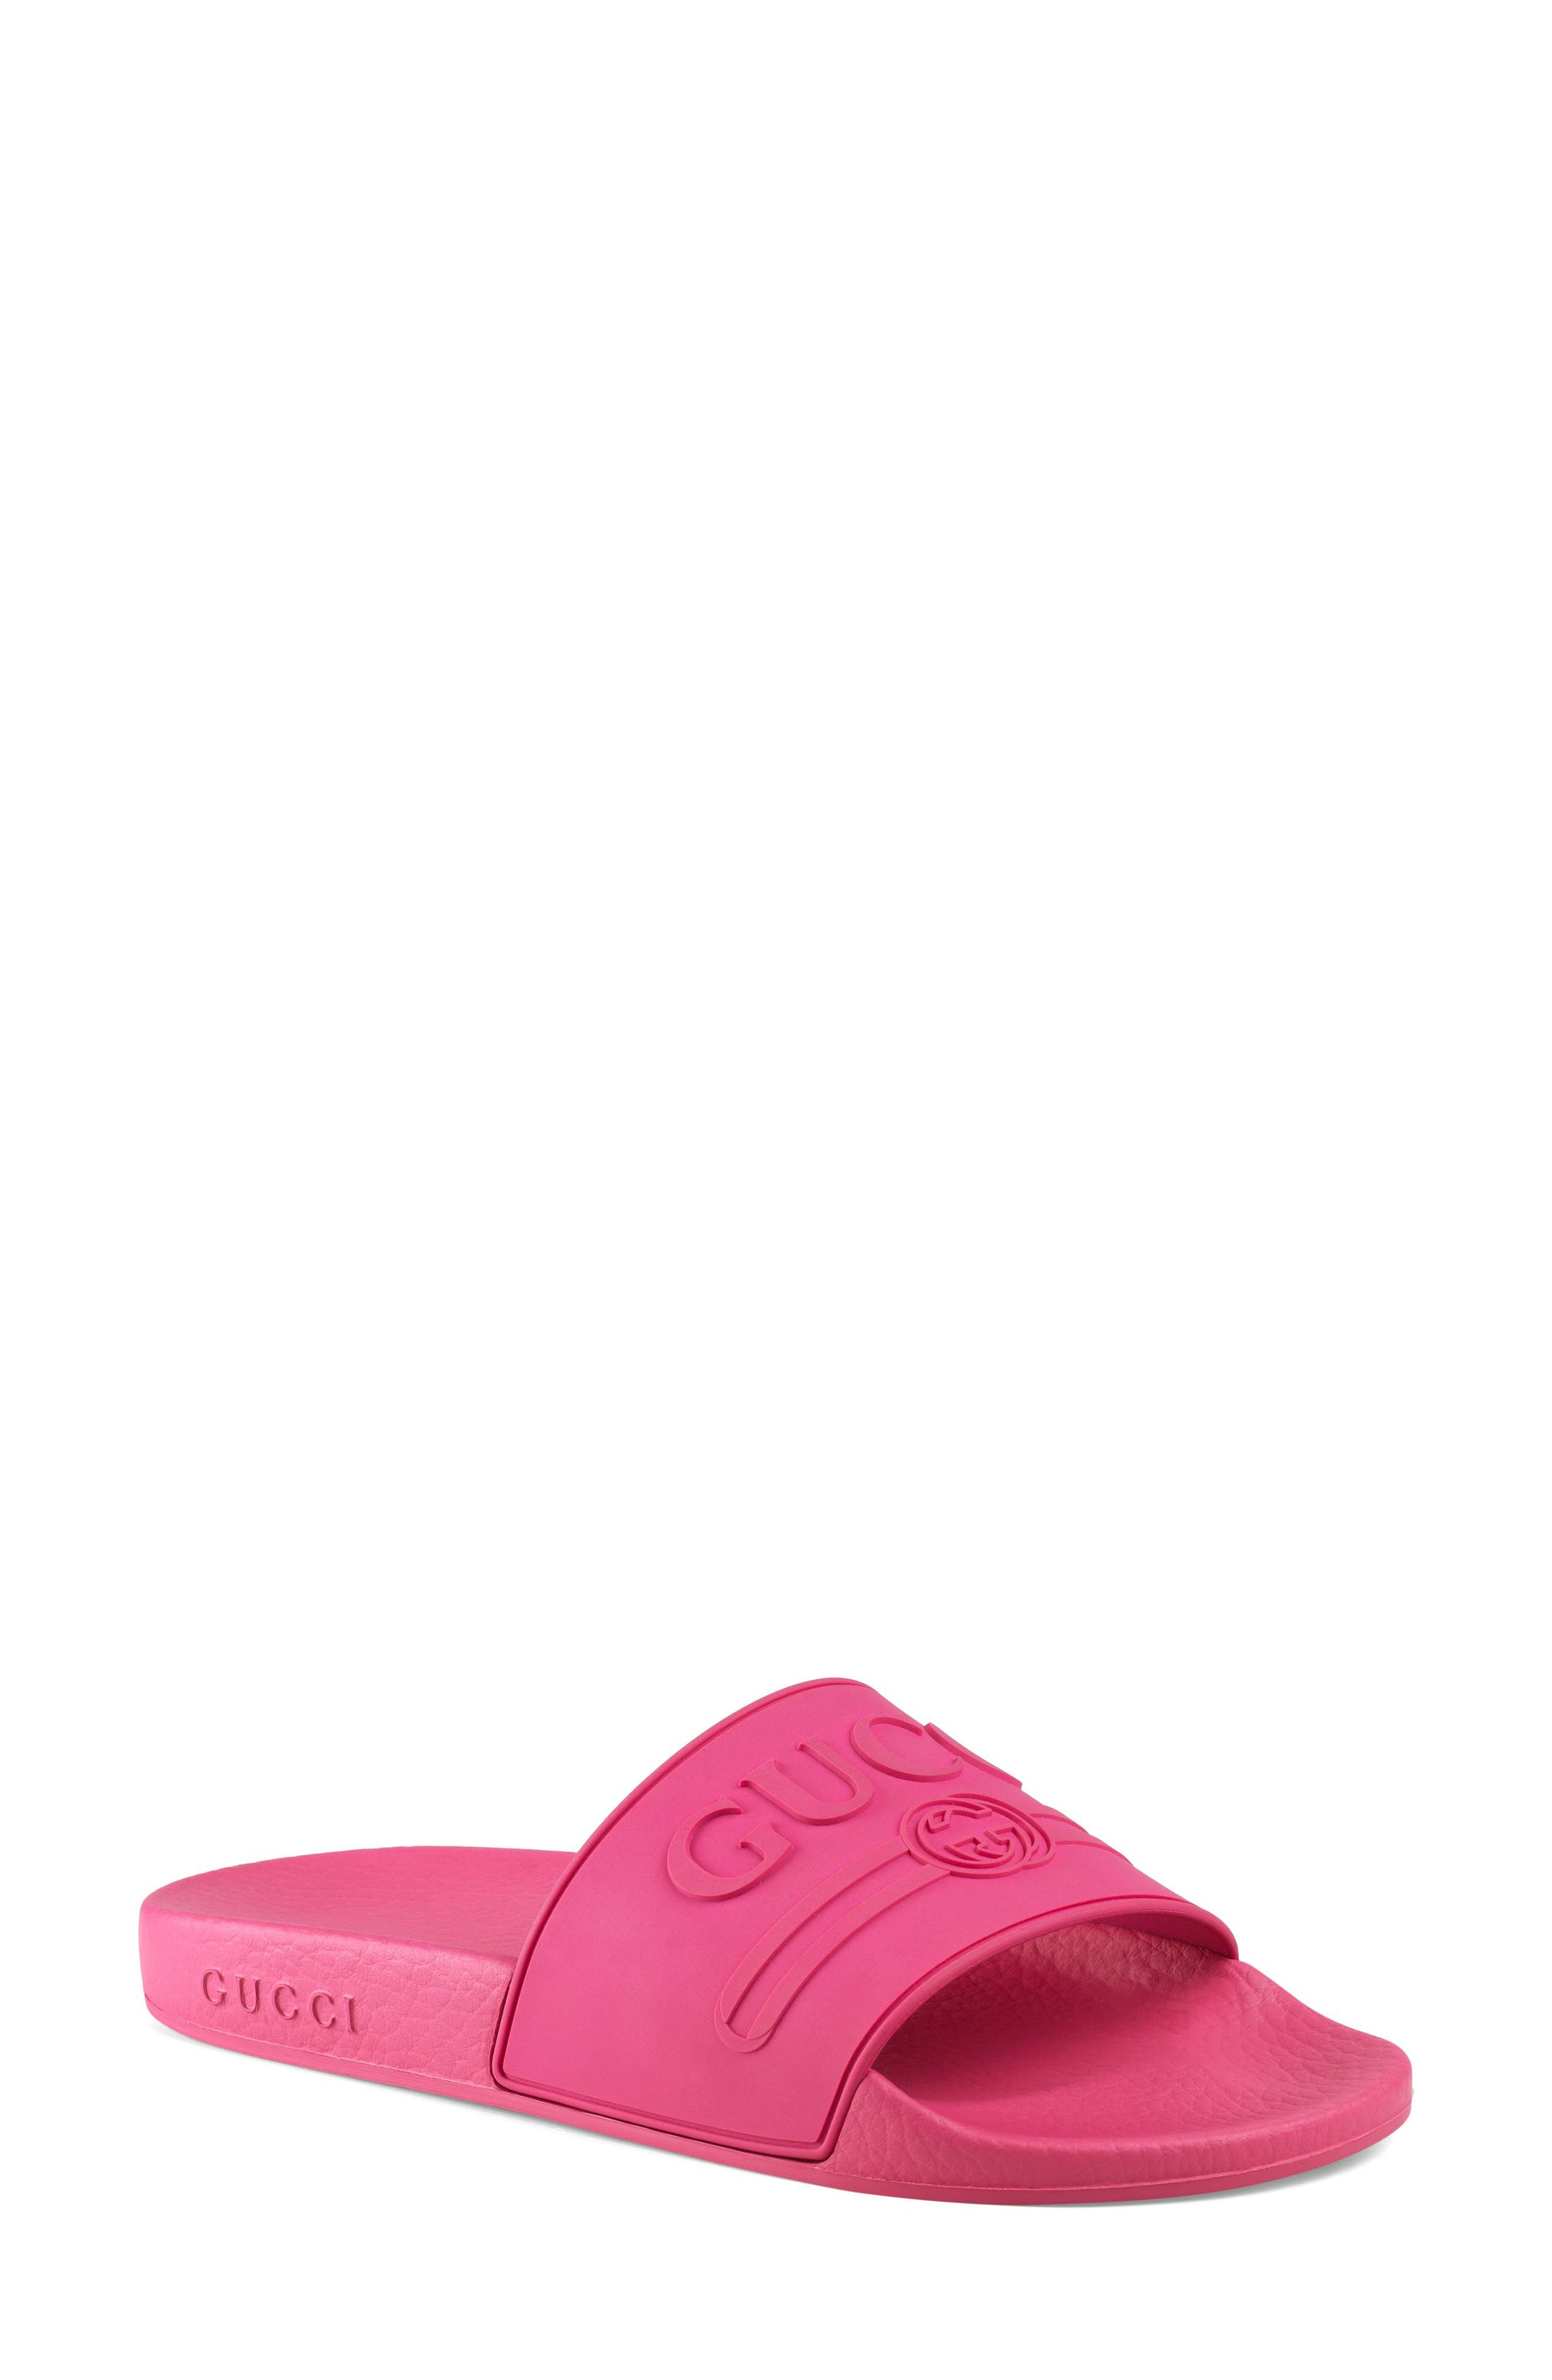 GUCCI Pursuit Logo Slide Sandal, Main, color, FUCHSIA